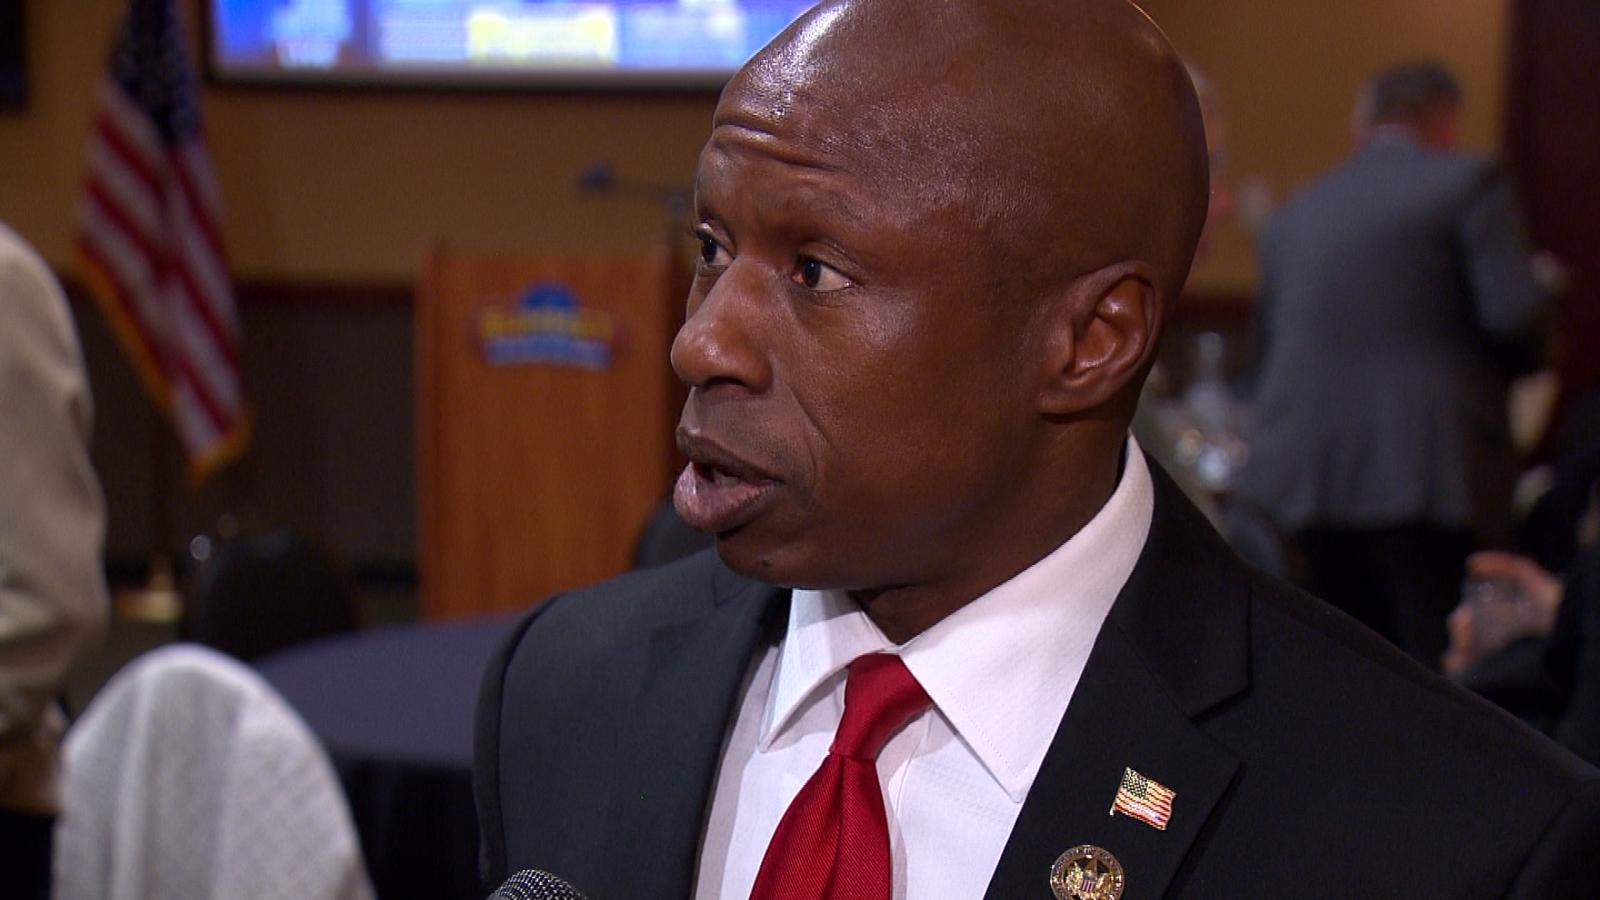 Darryl Glenn challenged Sen. Michael Bennet and lost. (credit: CBS)